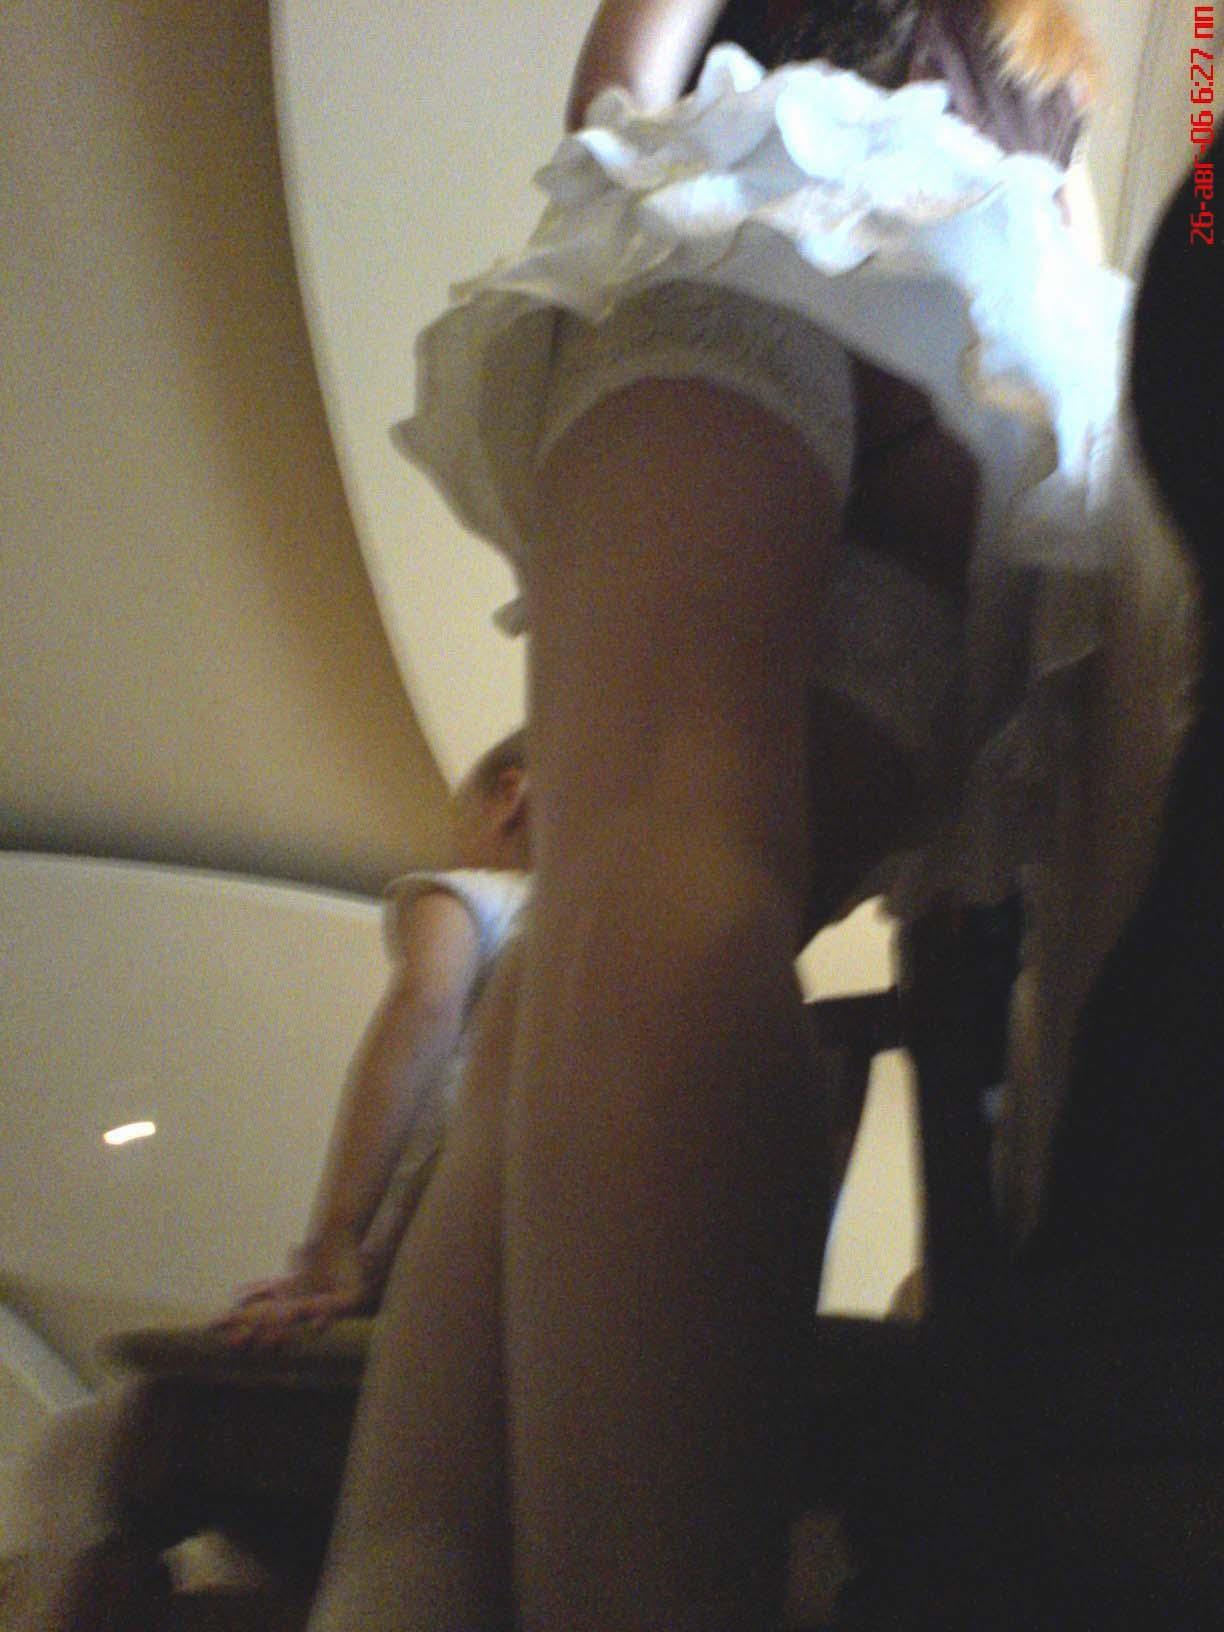 Opinion you upskirt brides wedding night suggest